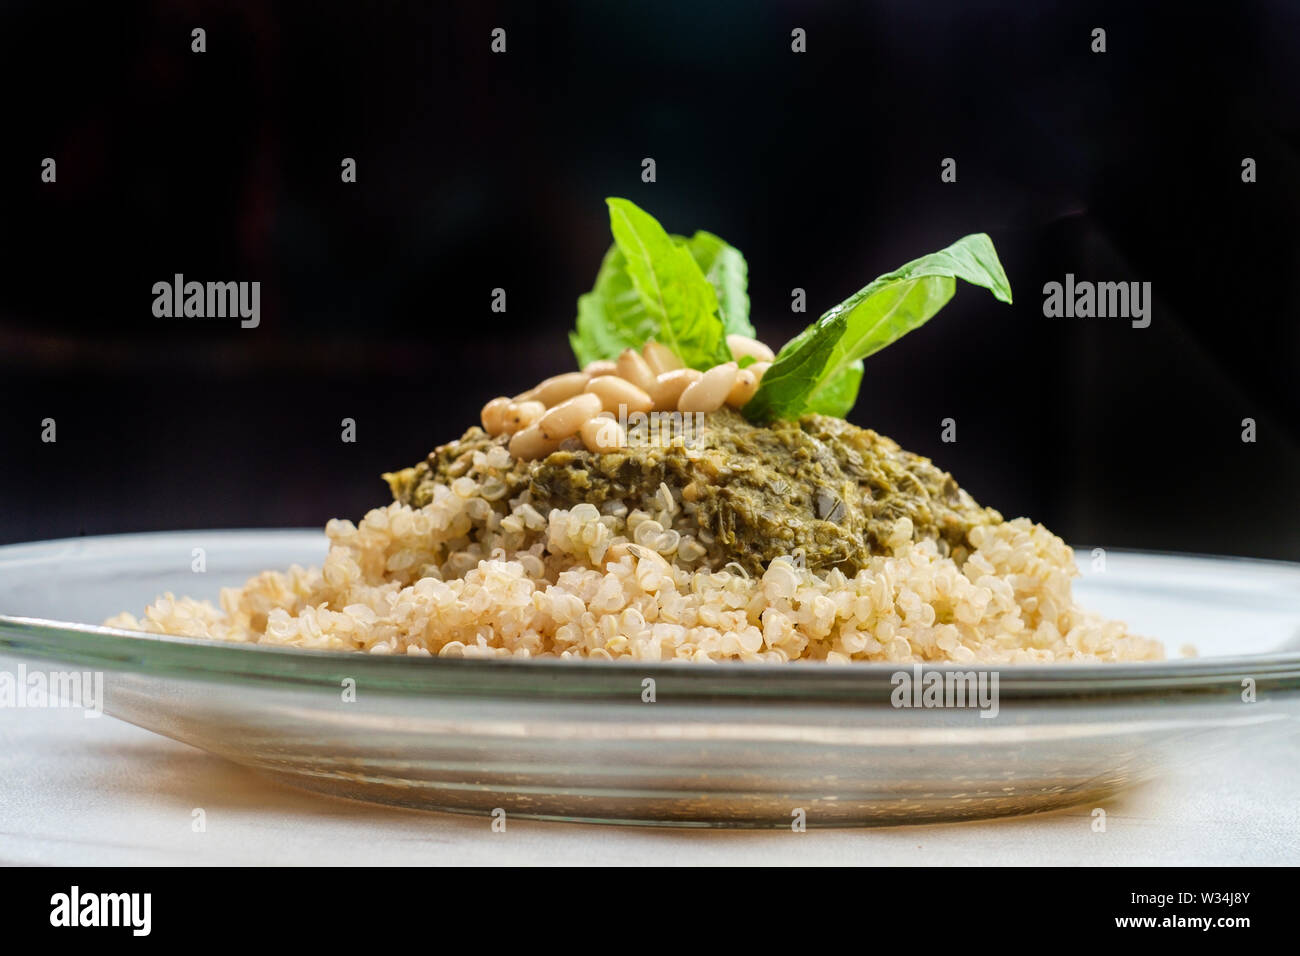 Healthy pesto quinoa salad with basil and pine nut garnish Stock Photo